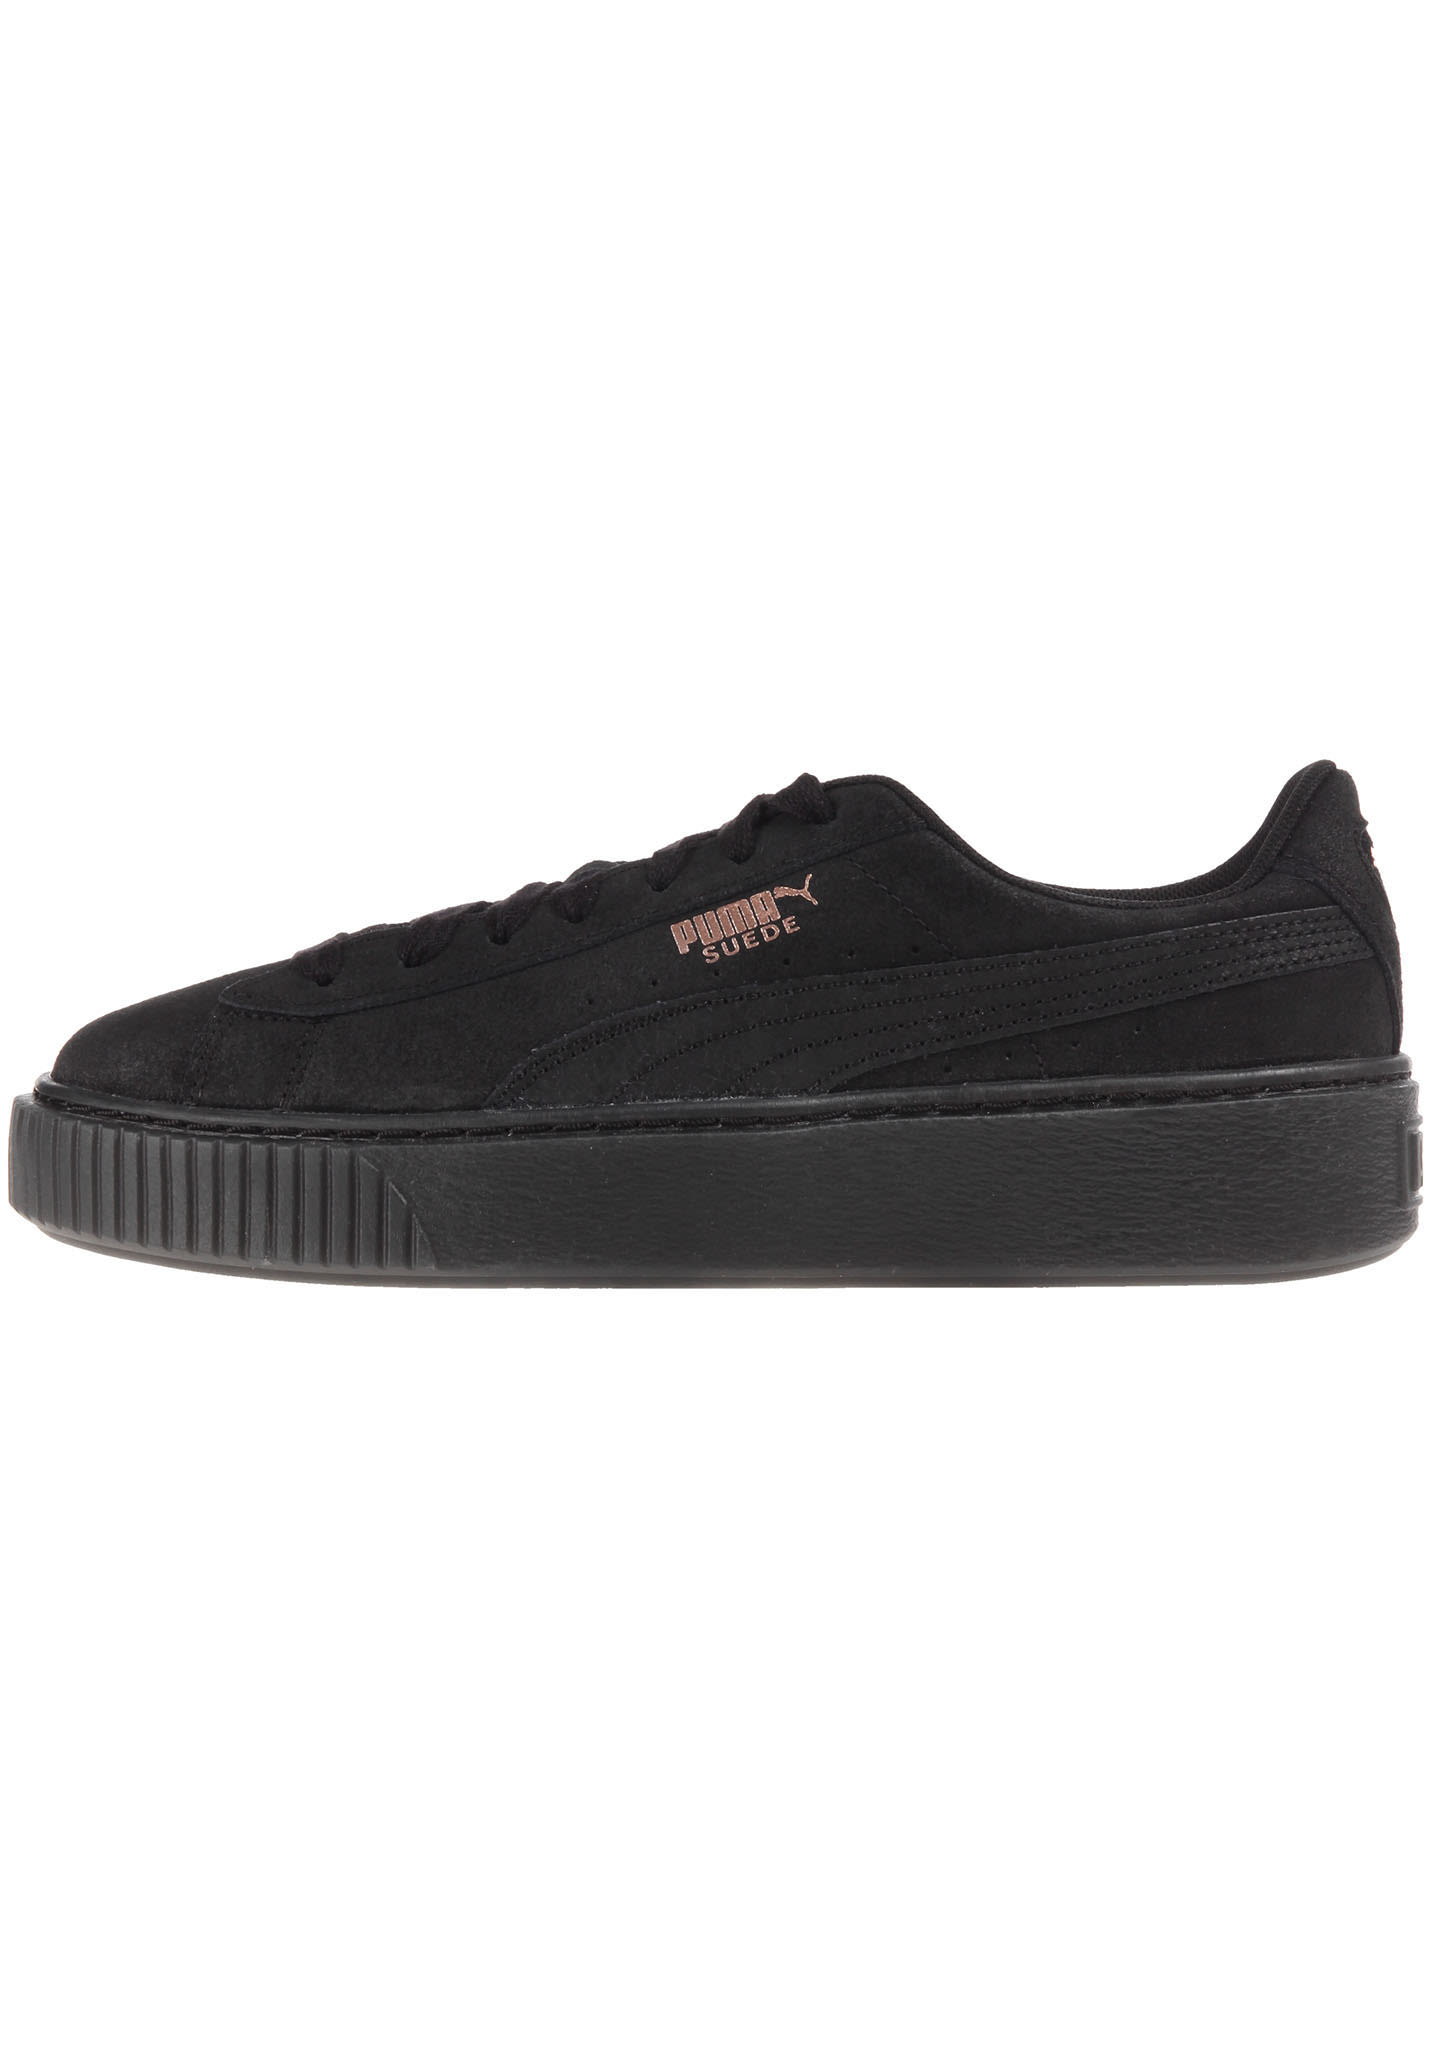 100% authentique 064b5 614df Puma Suede Platform Artica - Sneakers for Women - Black